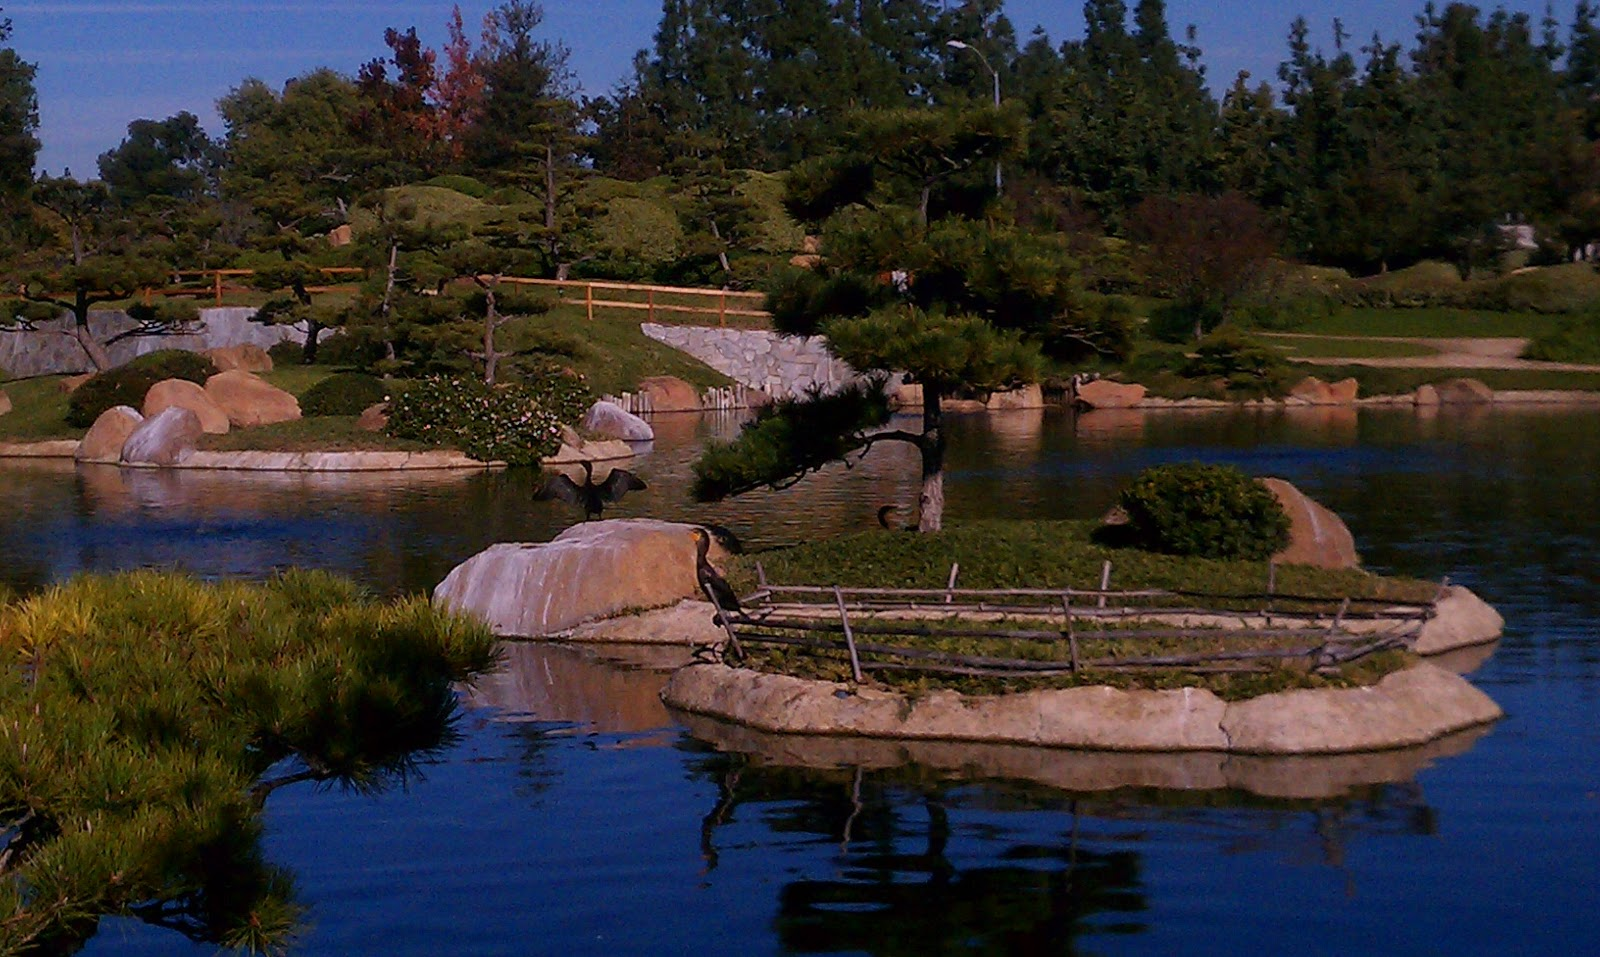 Los Angeles Japanese Garden: Things To Do In Los Angeles: The Japanese Garden